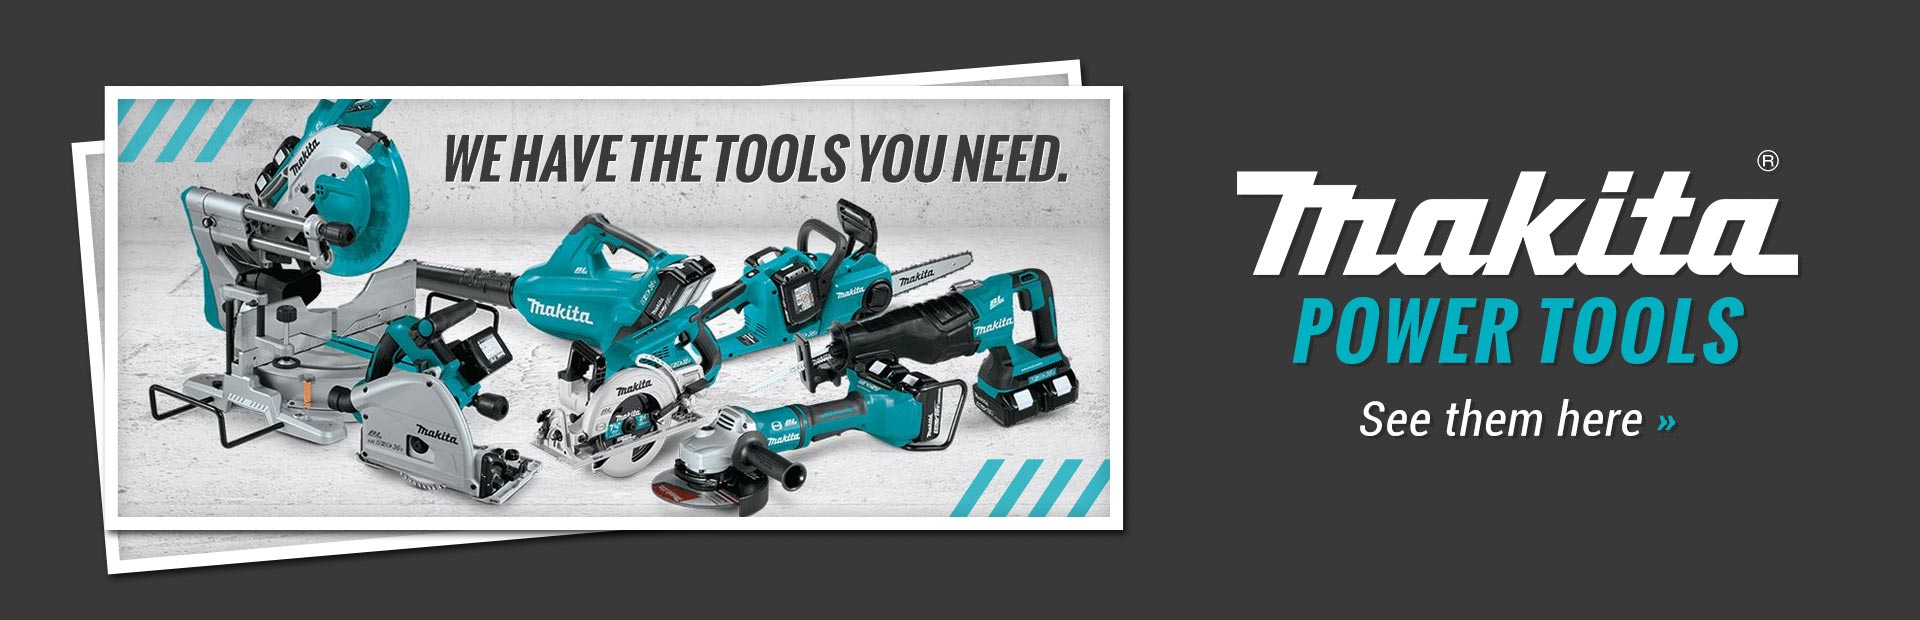 Makita Power Tools: Click here to view the models.